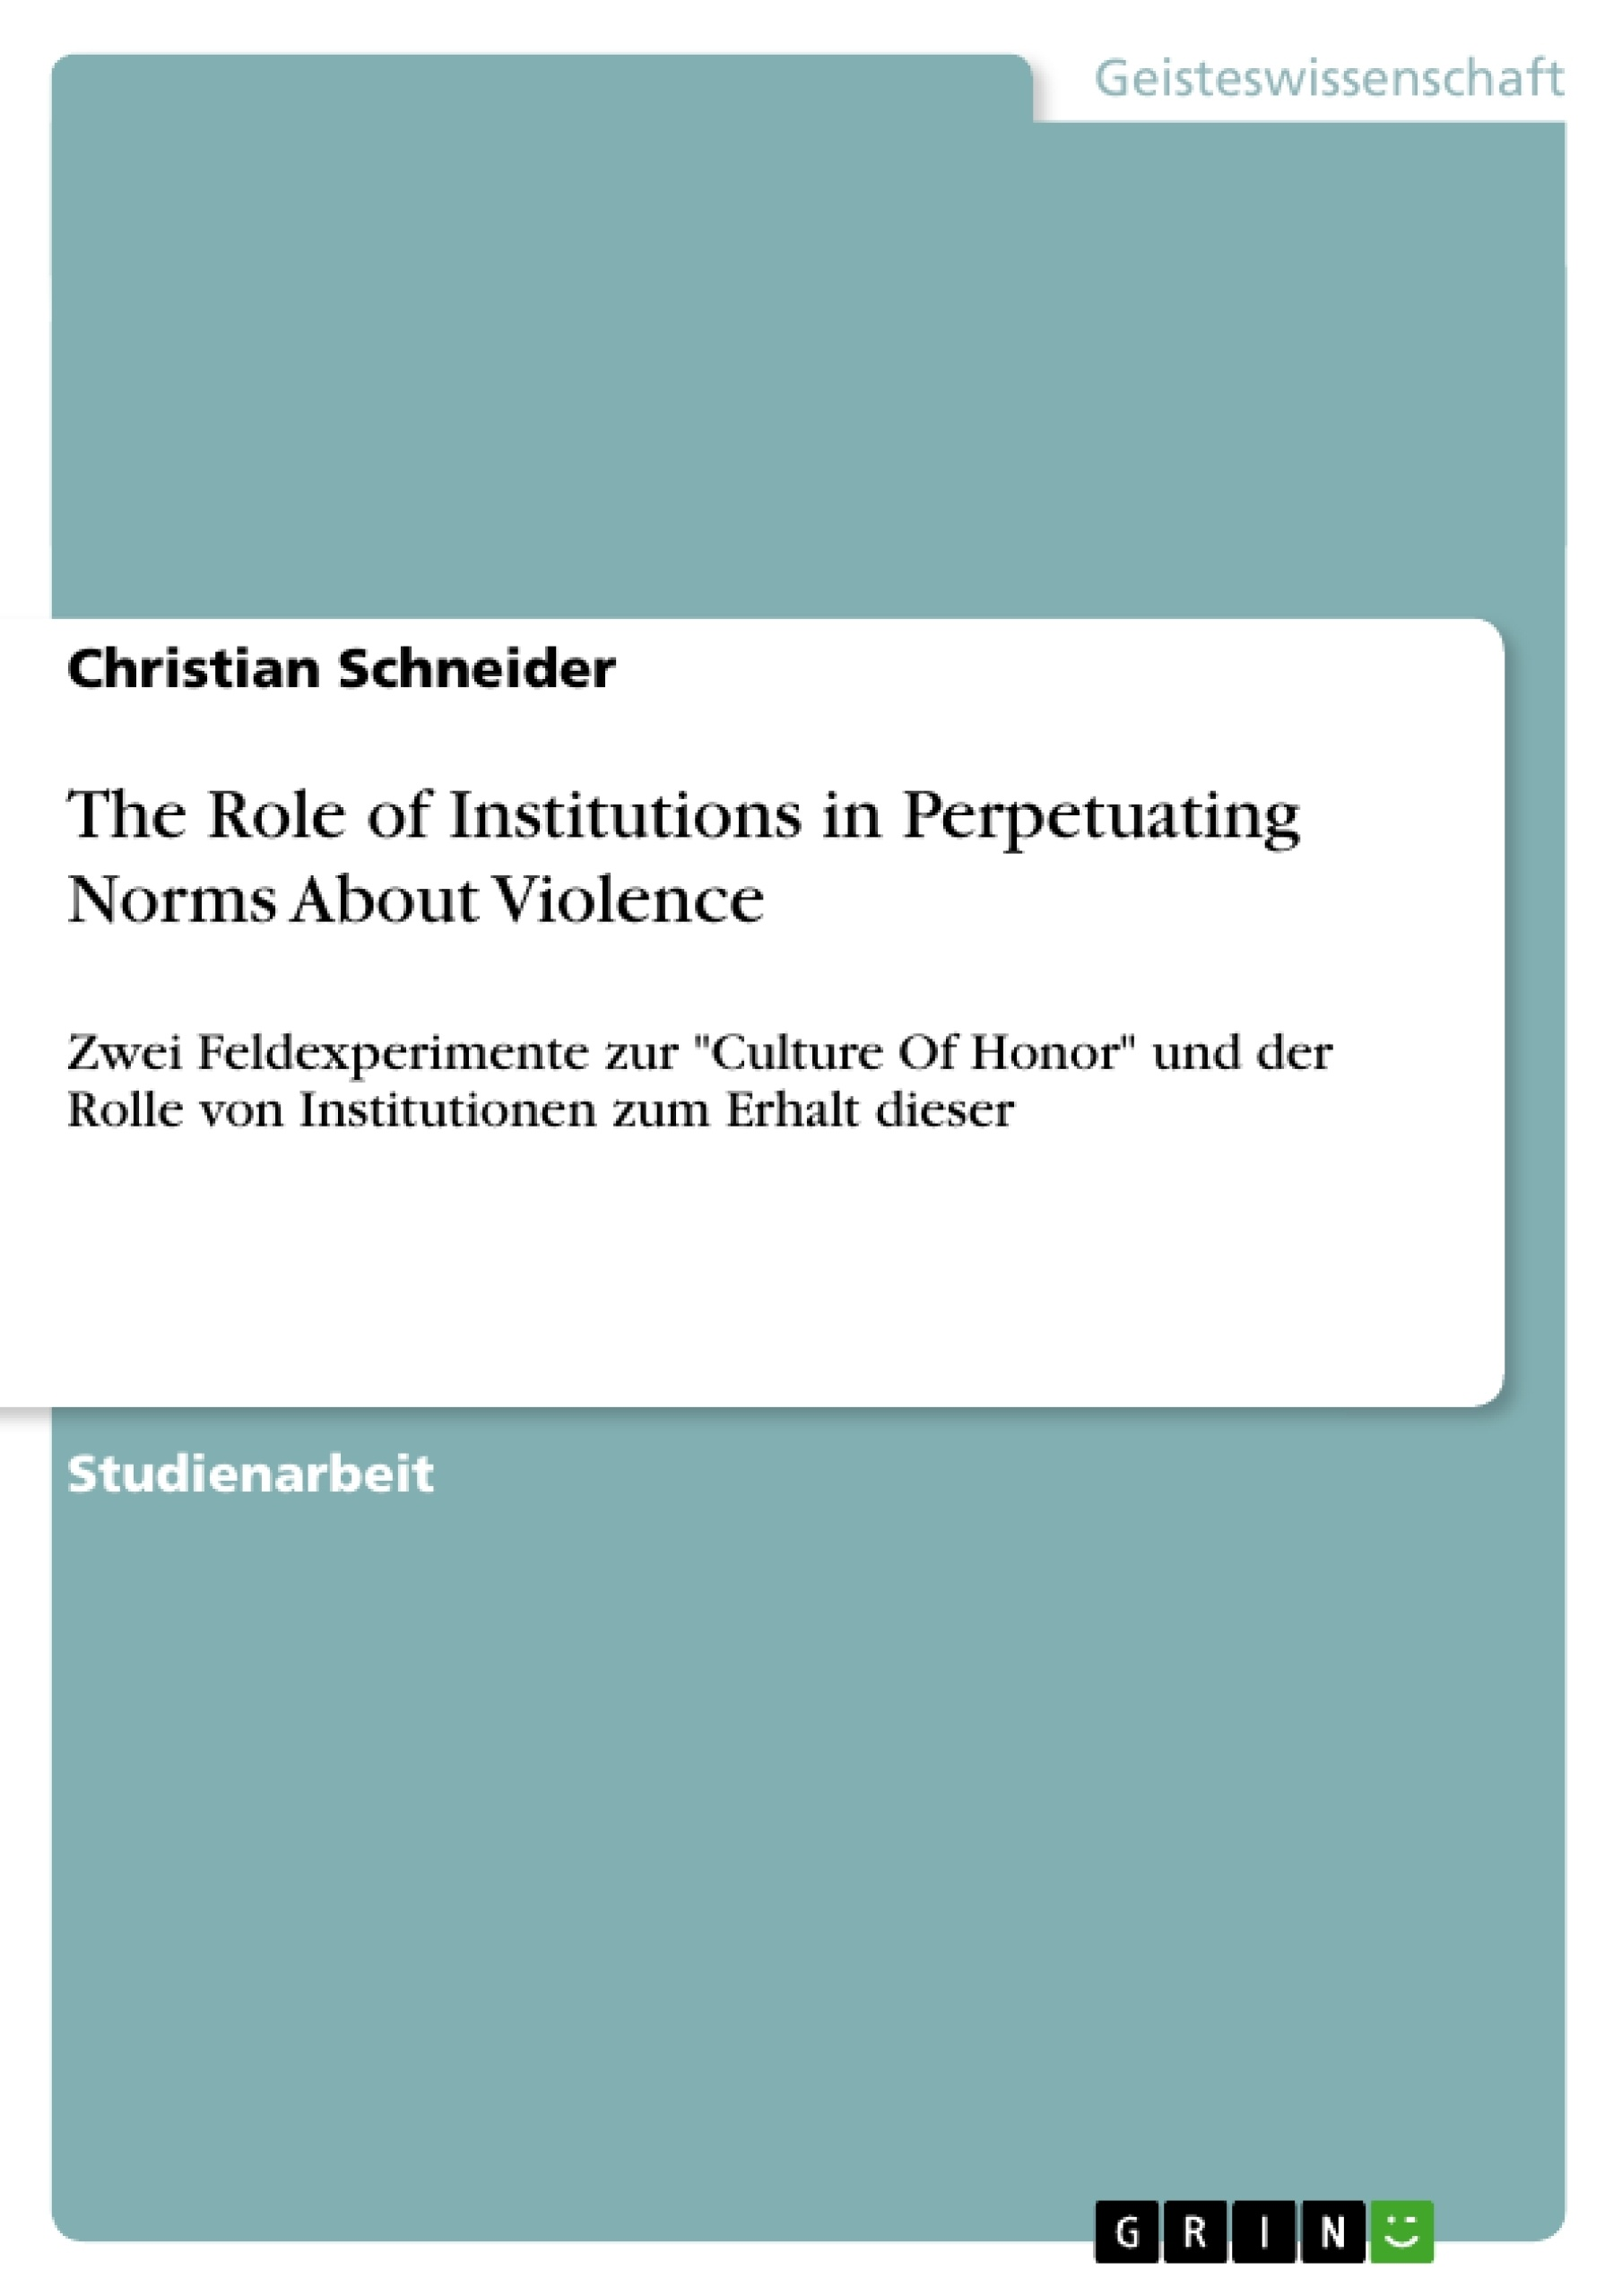 Titel: The Role of Institutions in Perpetuating Norms About Violence